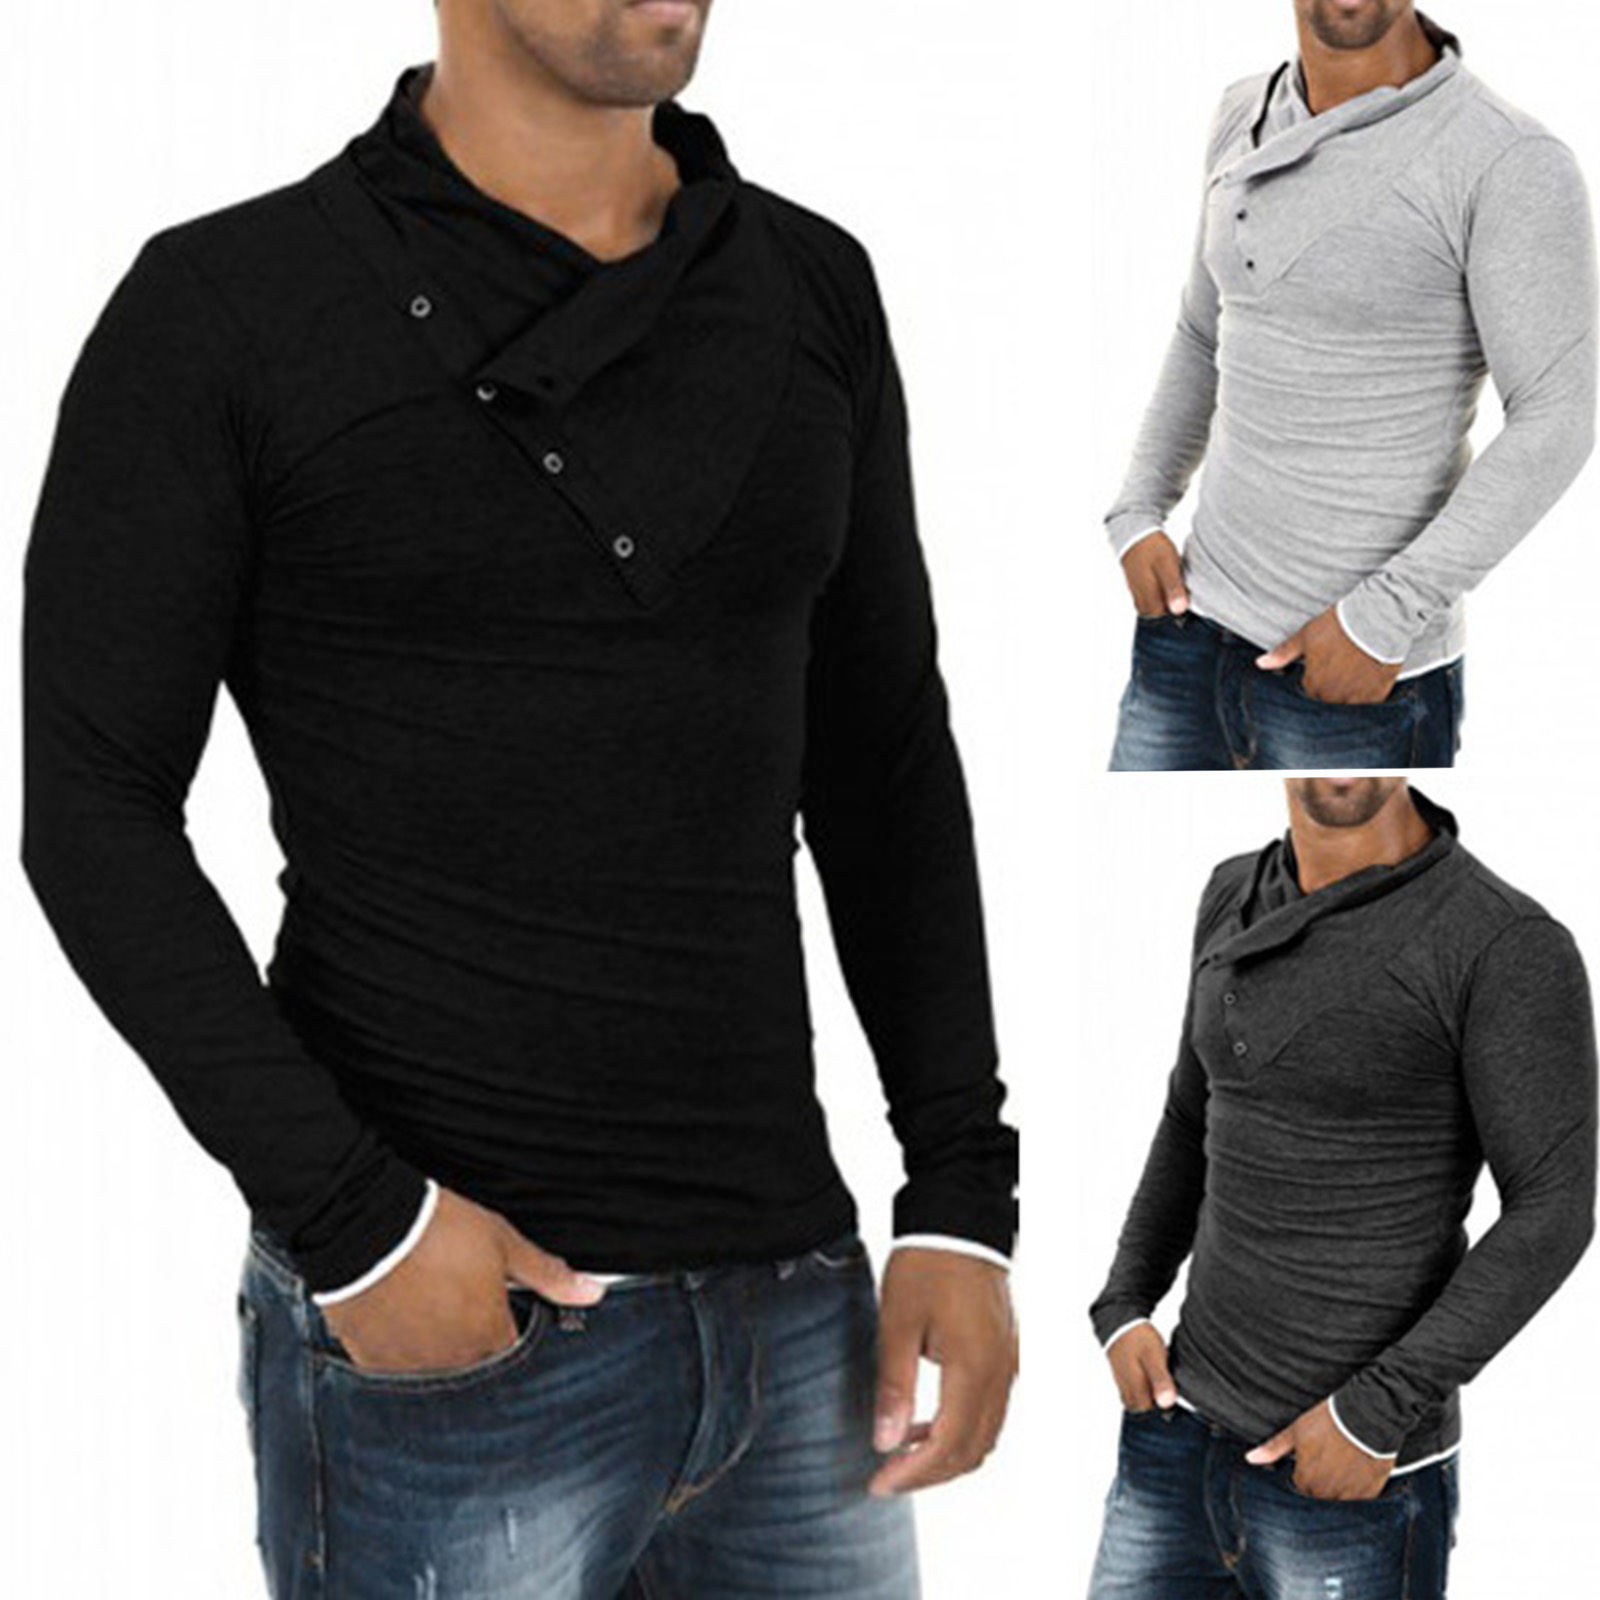 Latest Collar T Shirts Design For Men